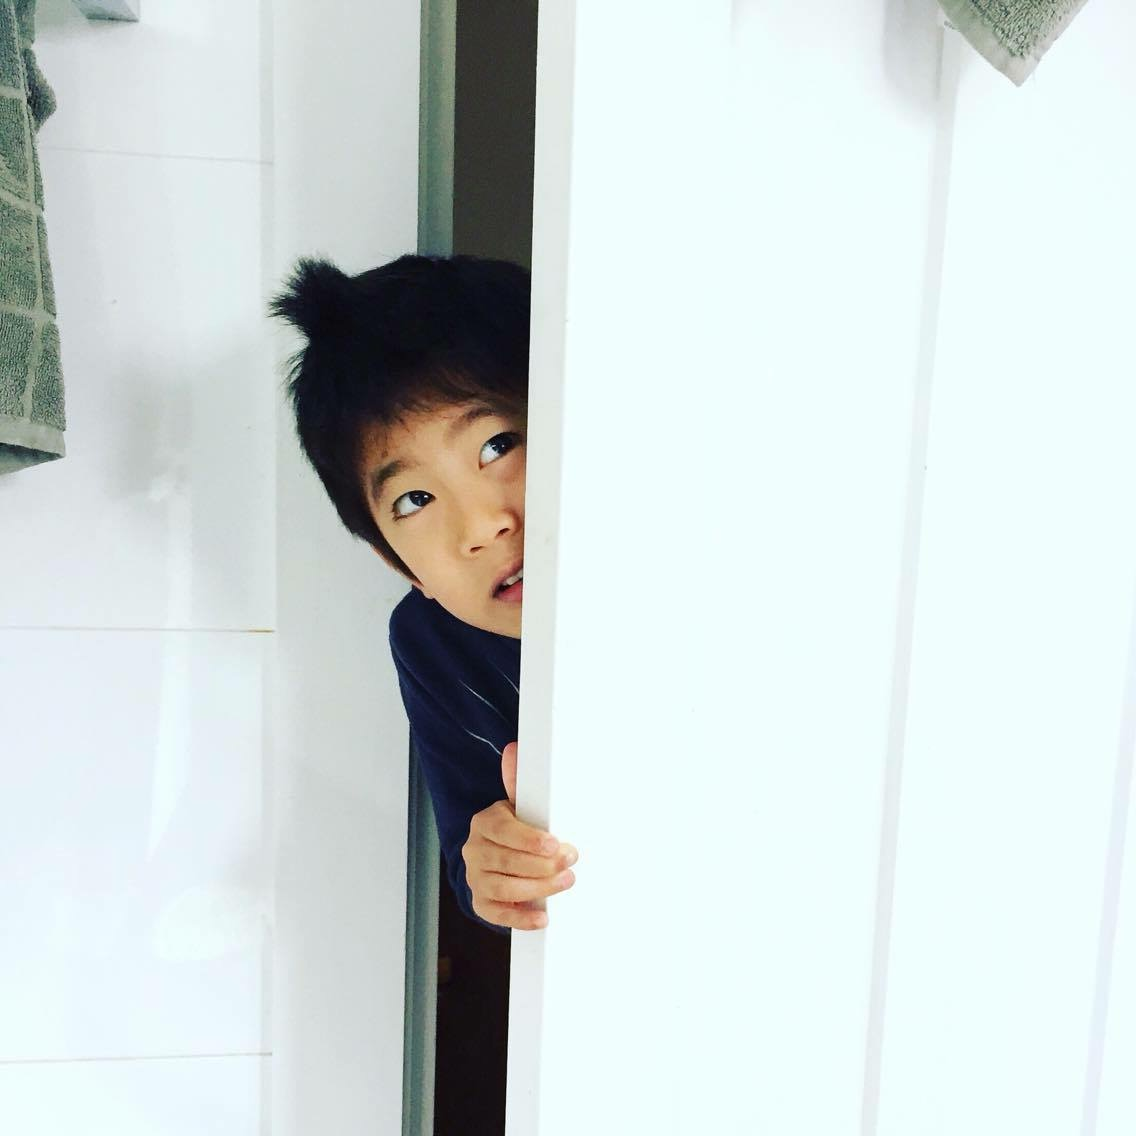 Play hide and seek with them